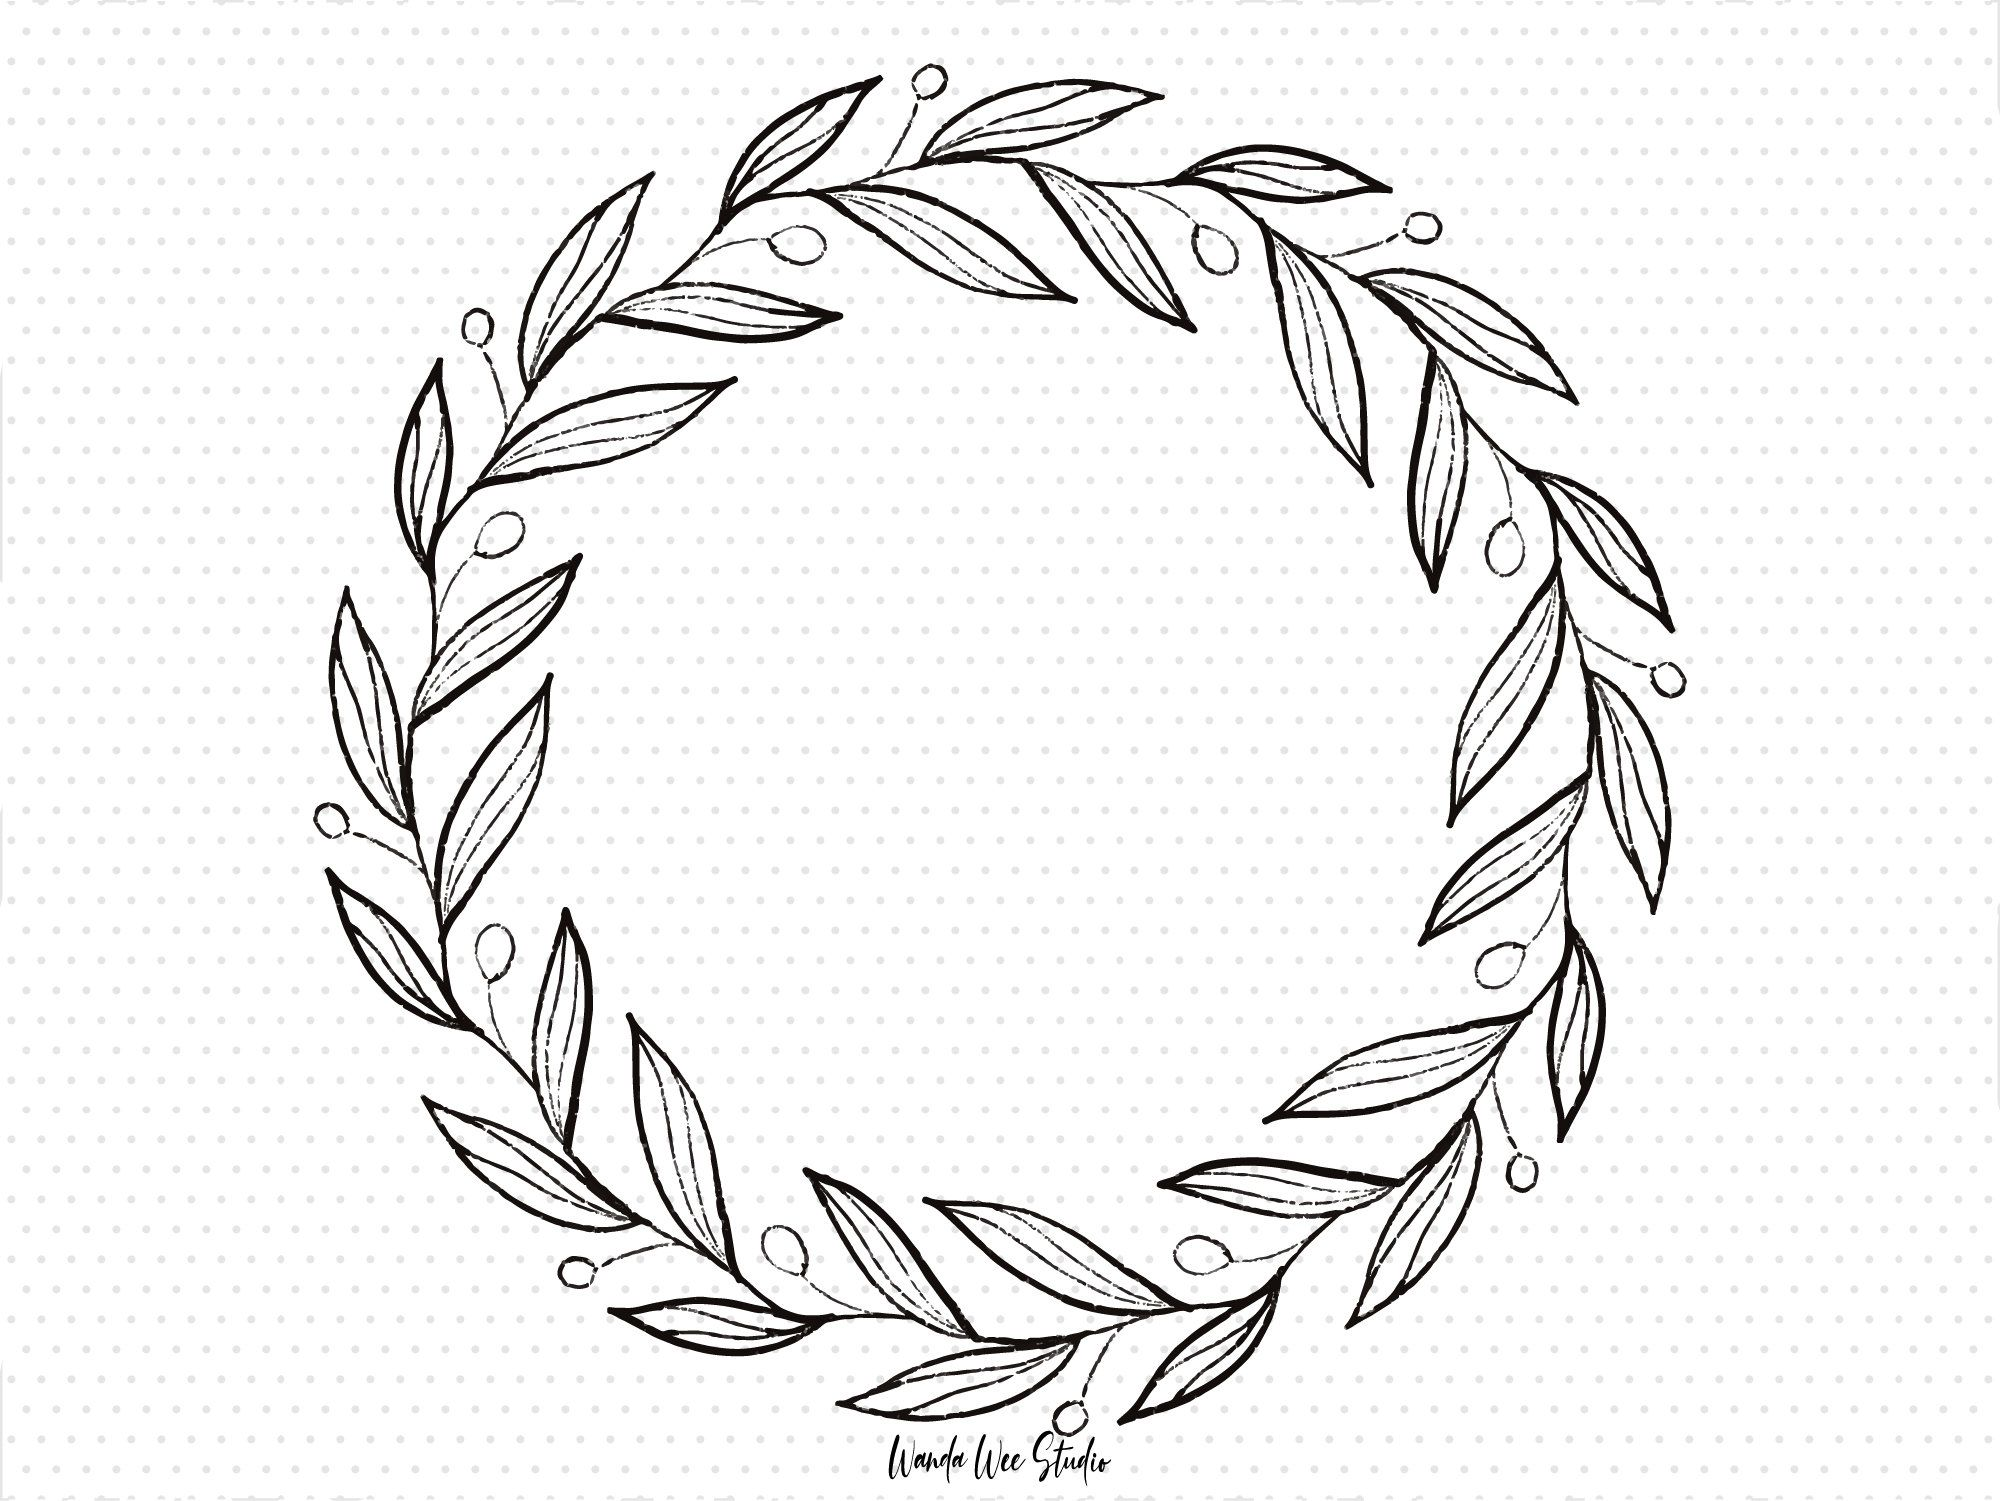 25+ Wreath Clipart Black And White